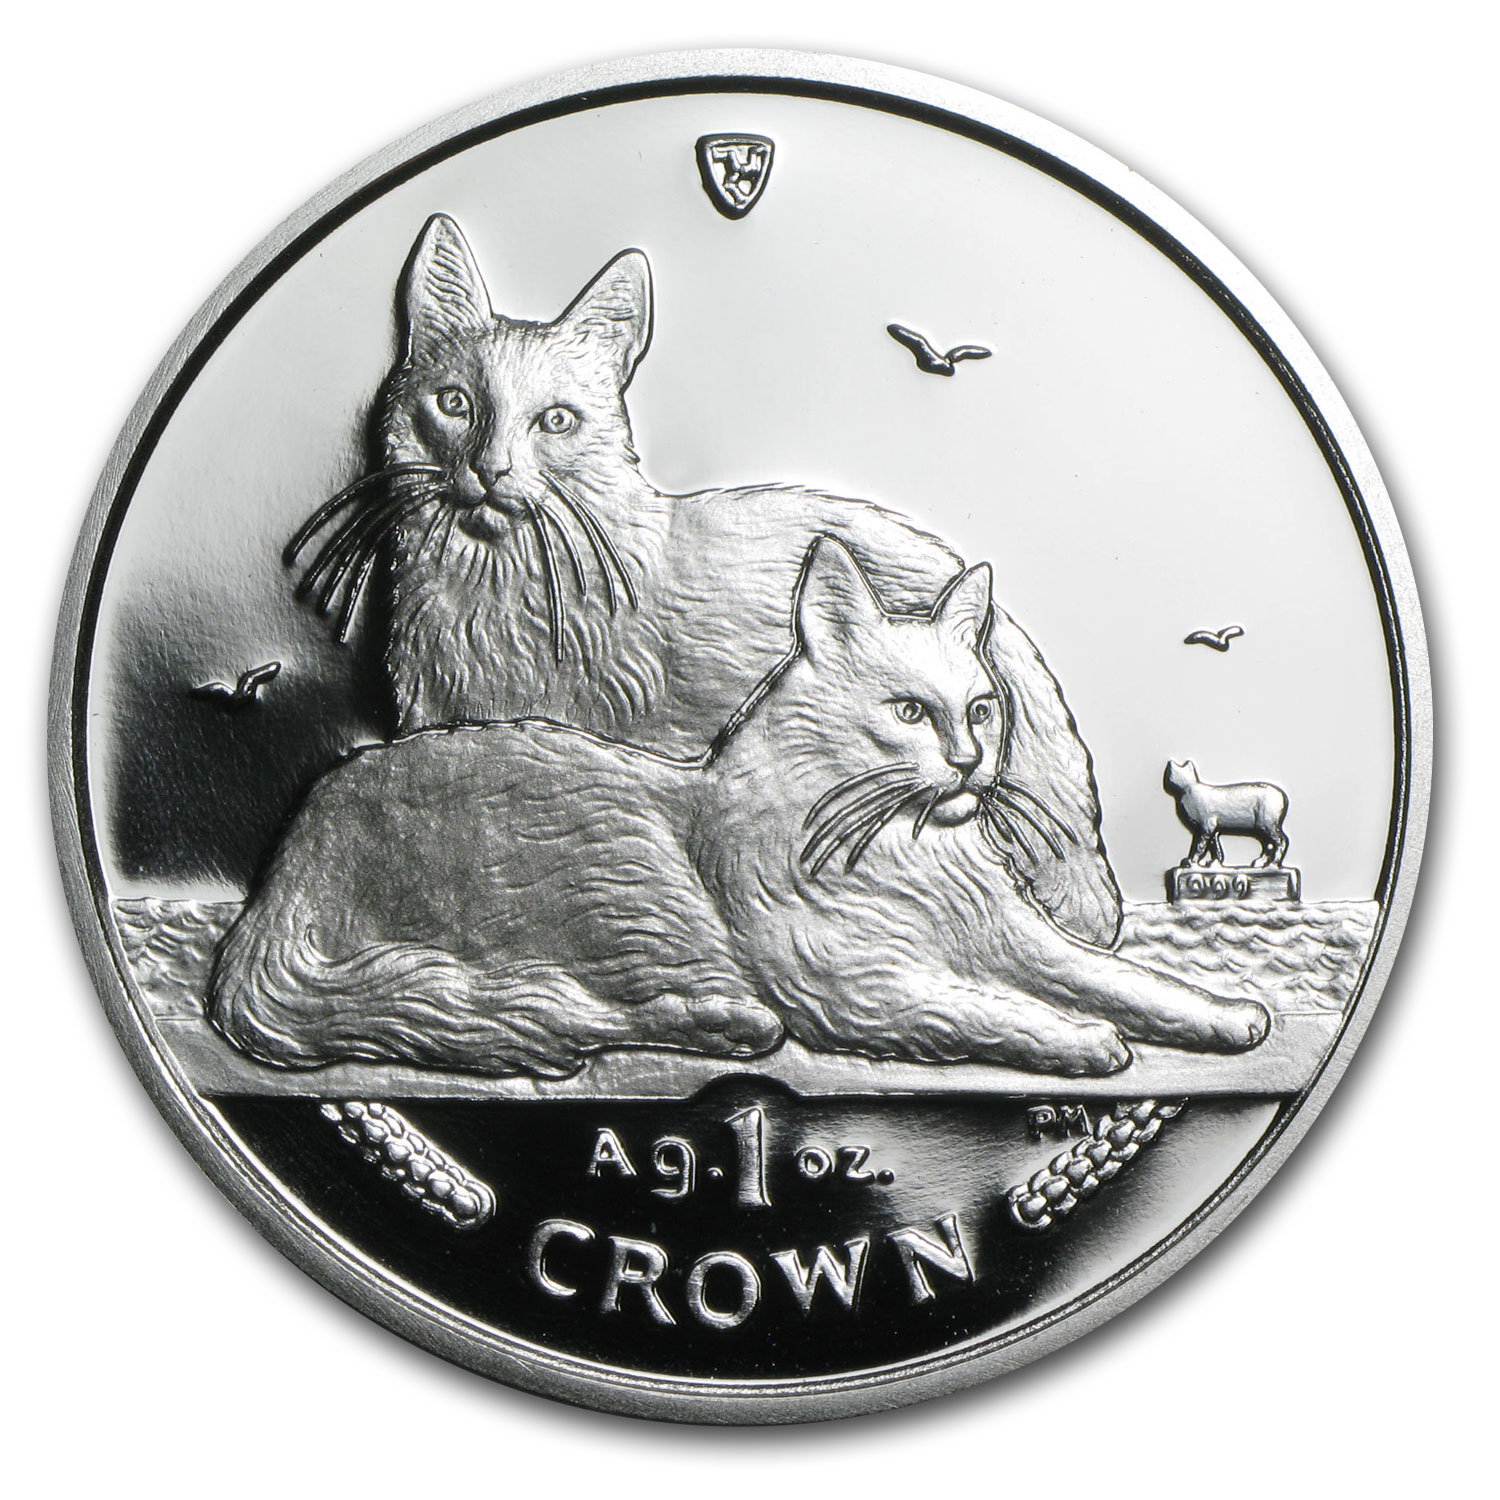 Isle of Man 2011 1 Crown Silver Proof Turkish Angora Cat